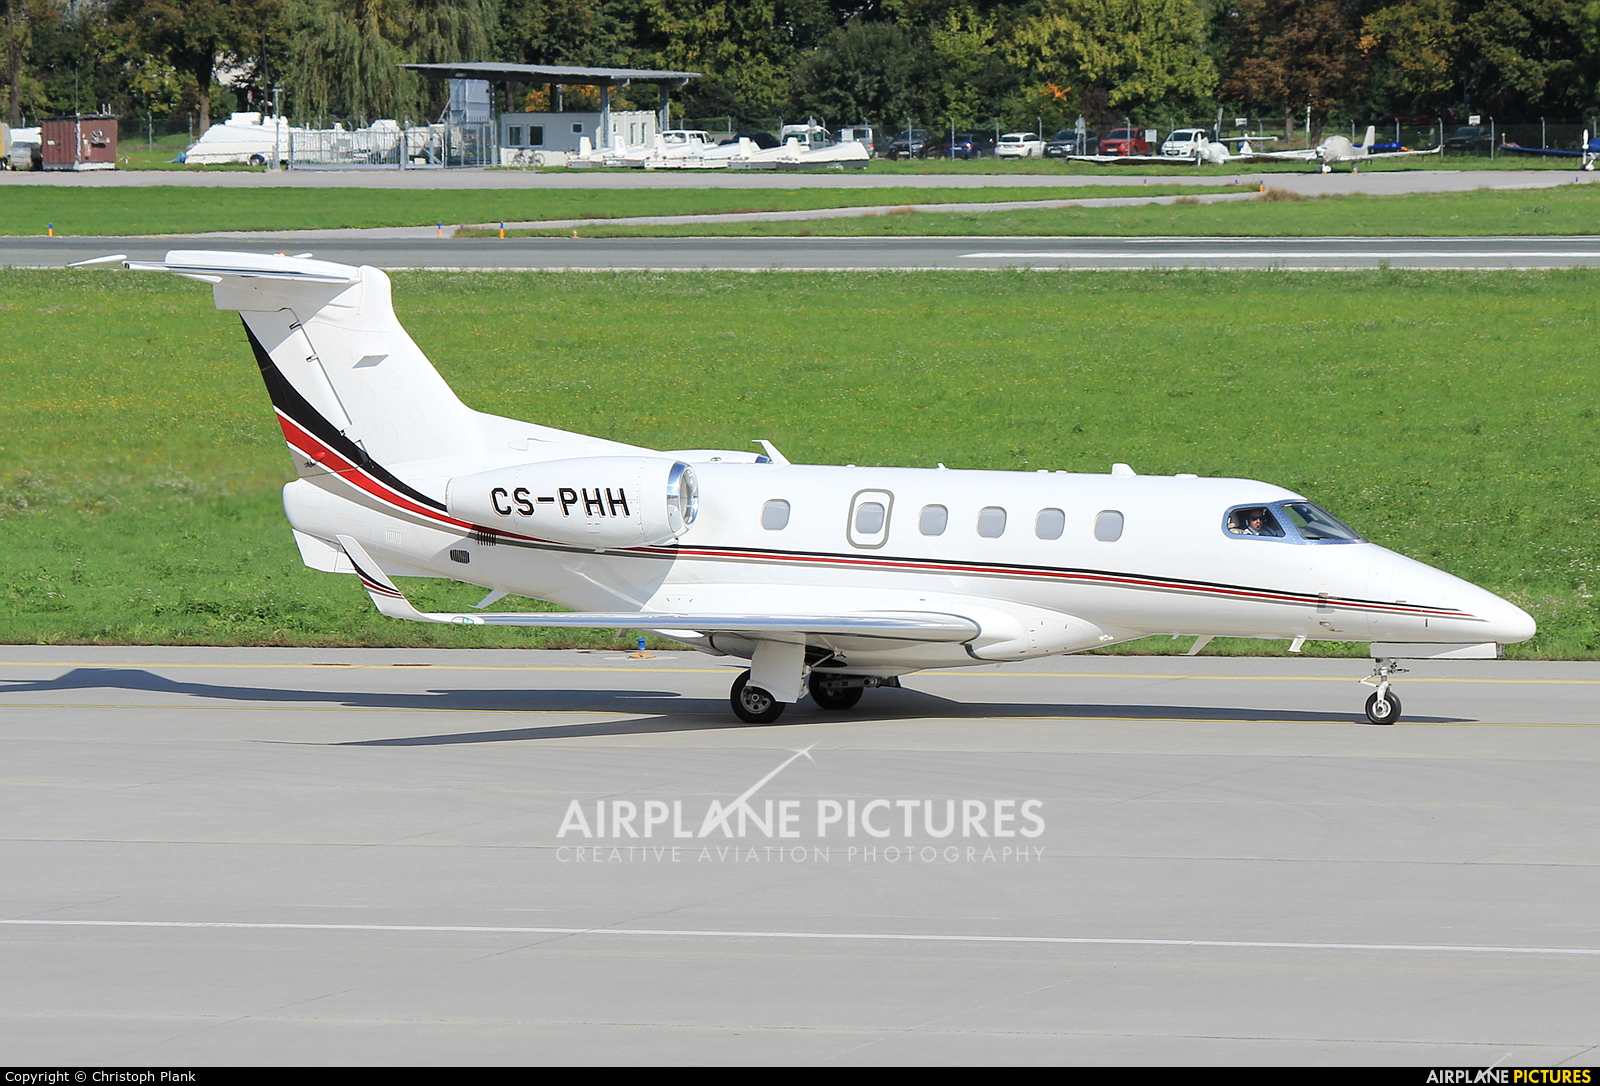 NetJets Europe (Portugal) CS-PHH aircraft at Innsbruck